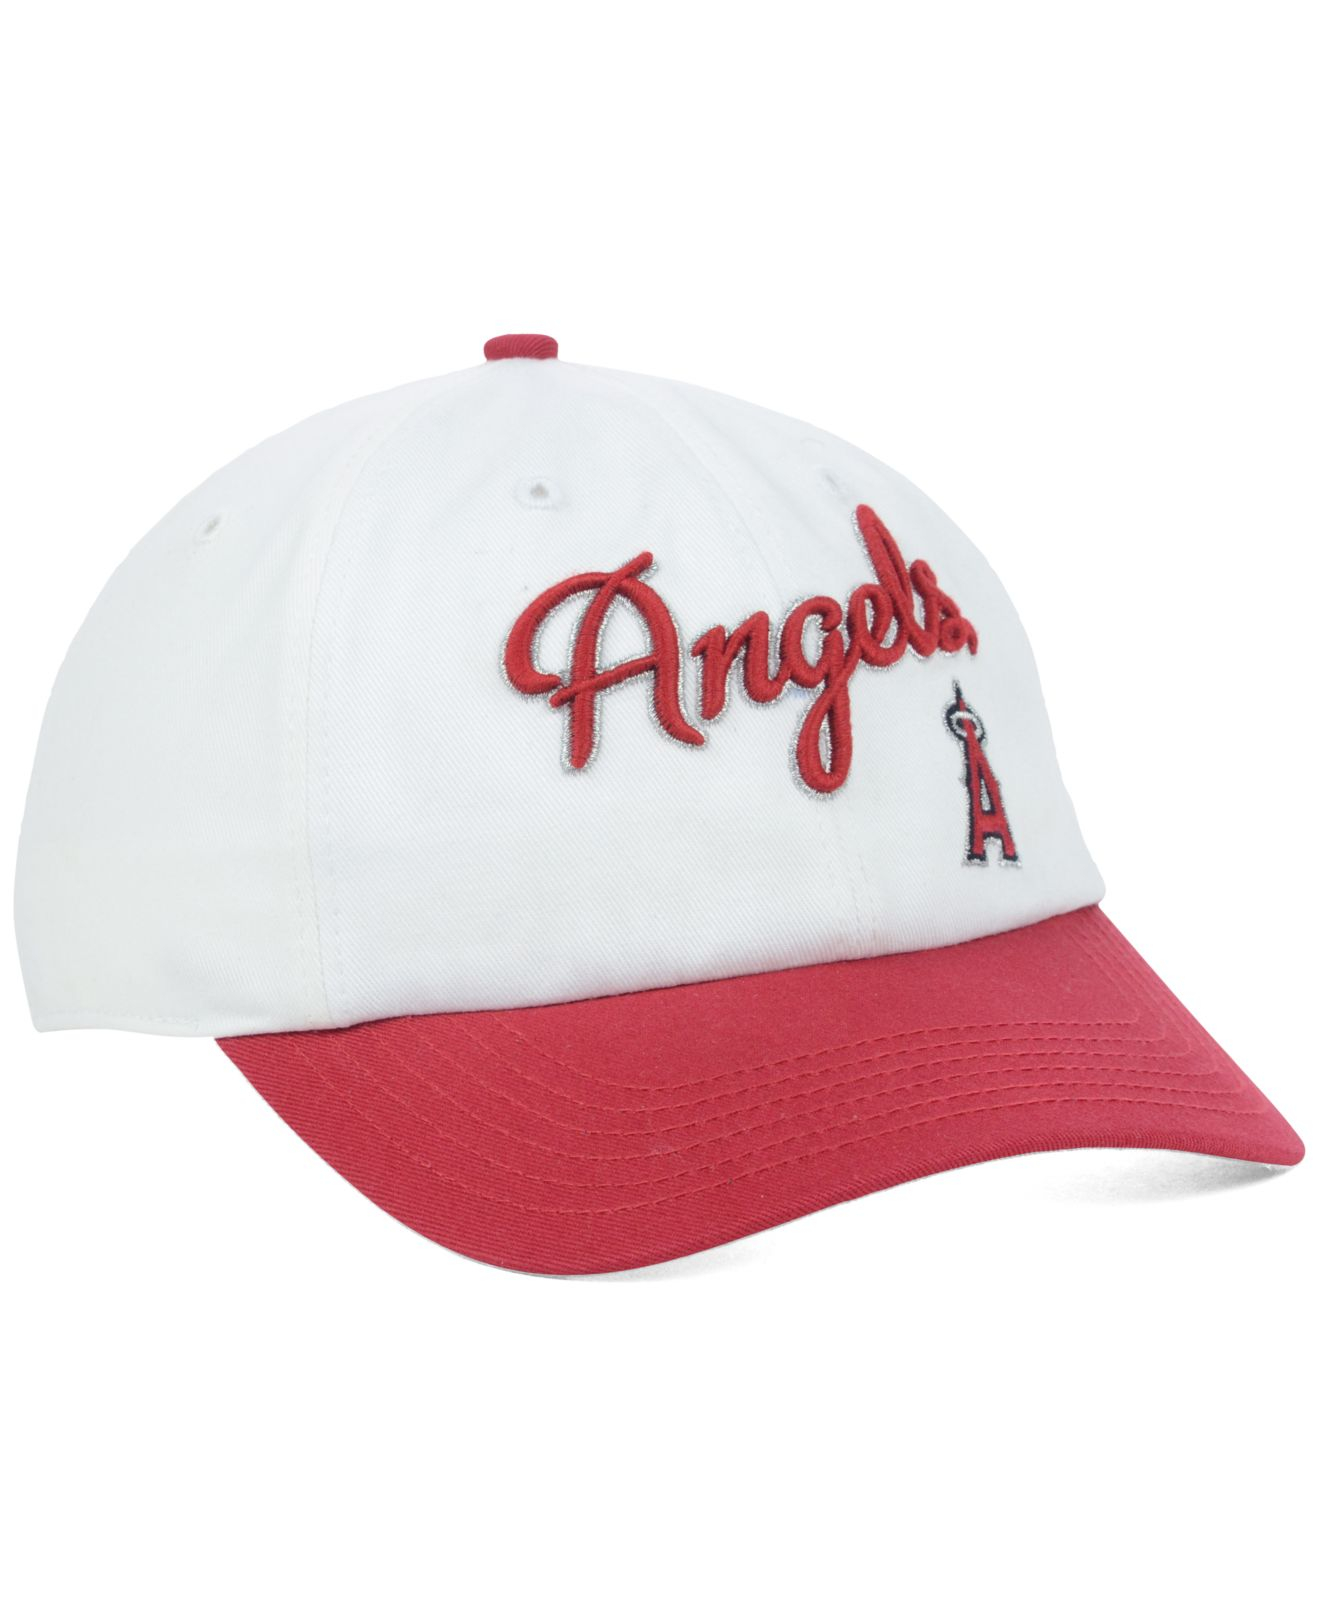 genuine shoes uk cheap sale best price check out 1ef11 1a646 los angeles angels of anaheim 47 brand mlb ...